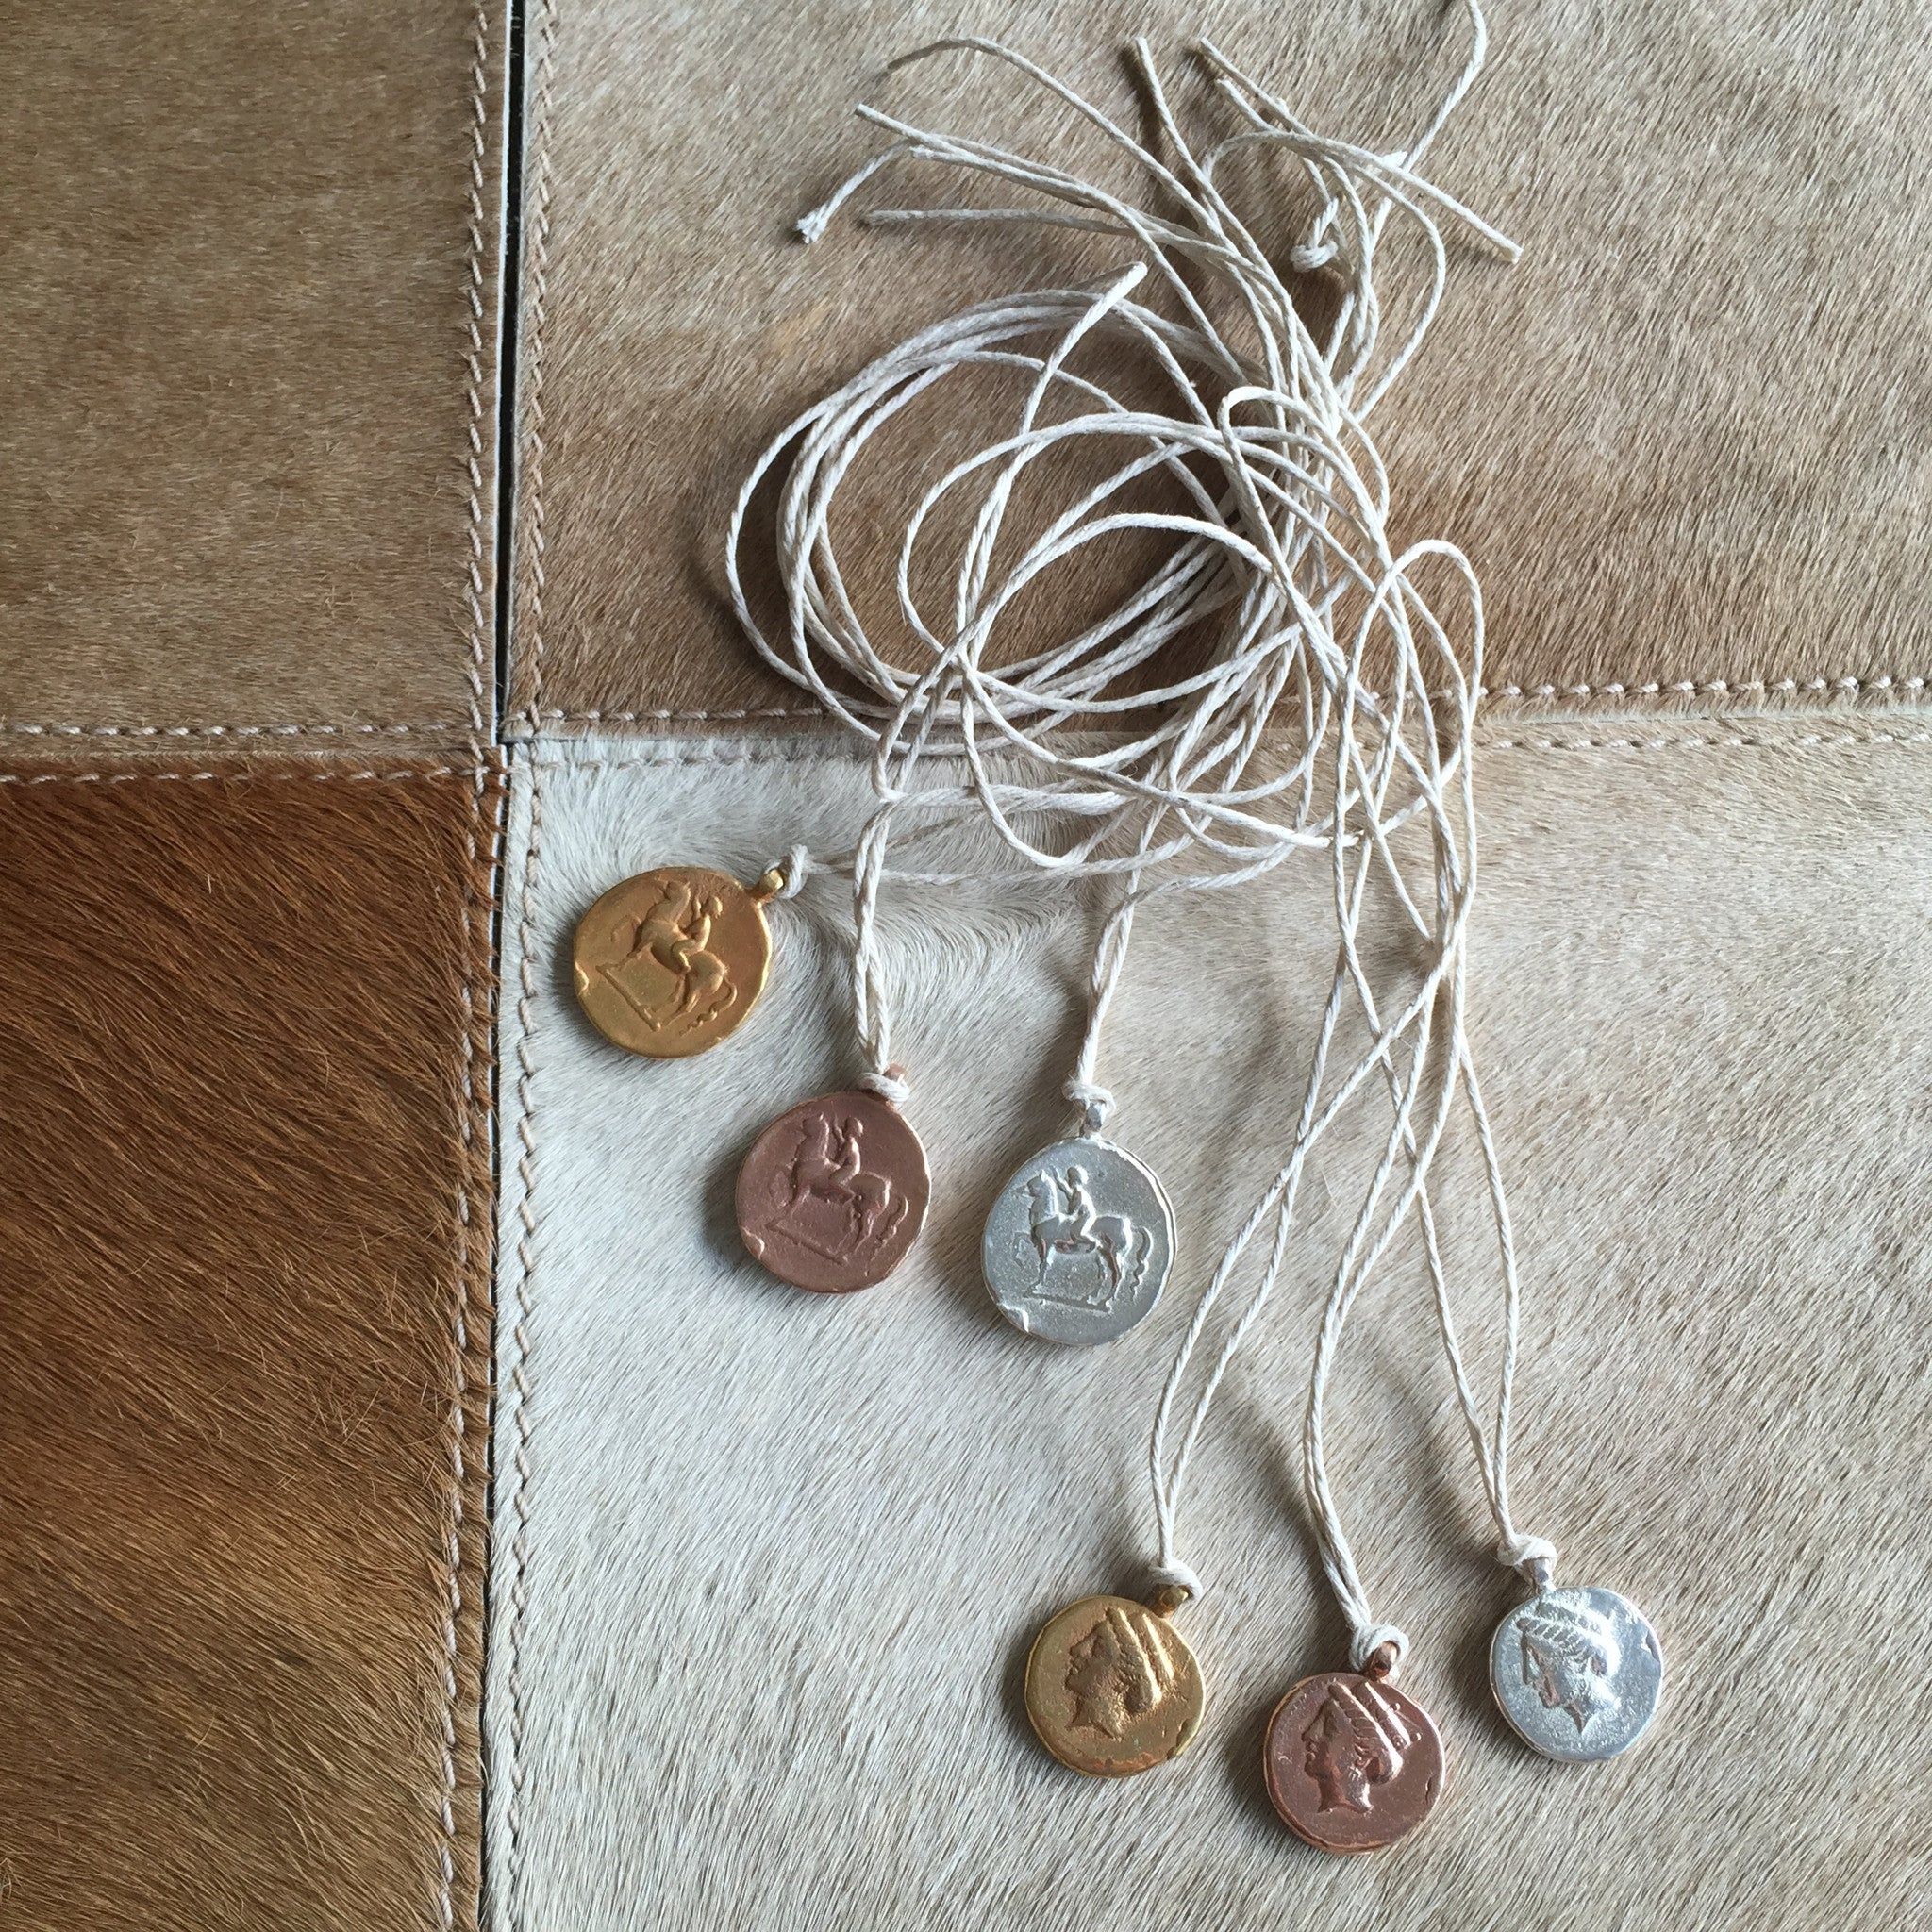 coin of tarras - his & hers necklace